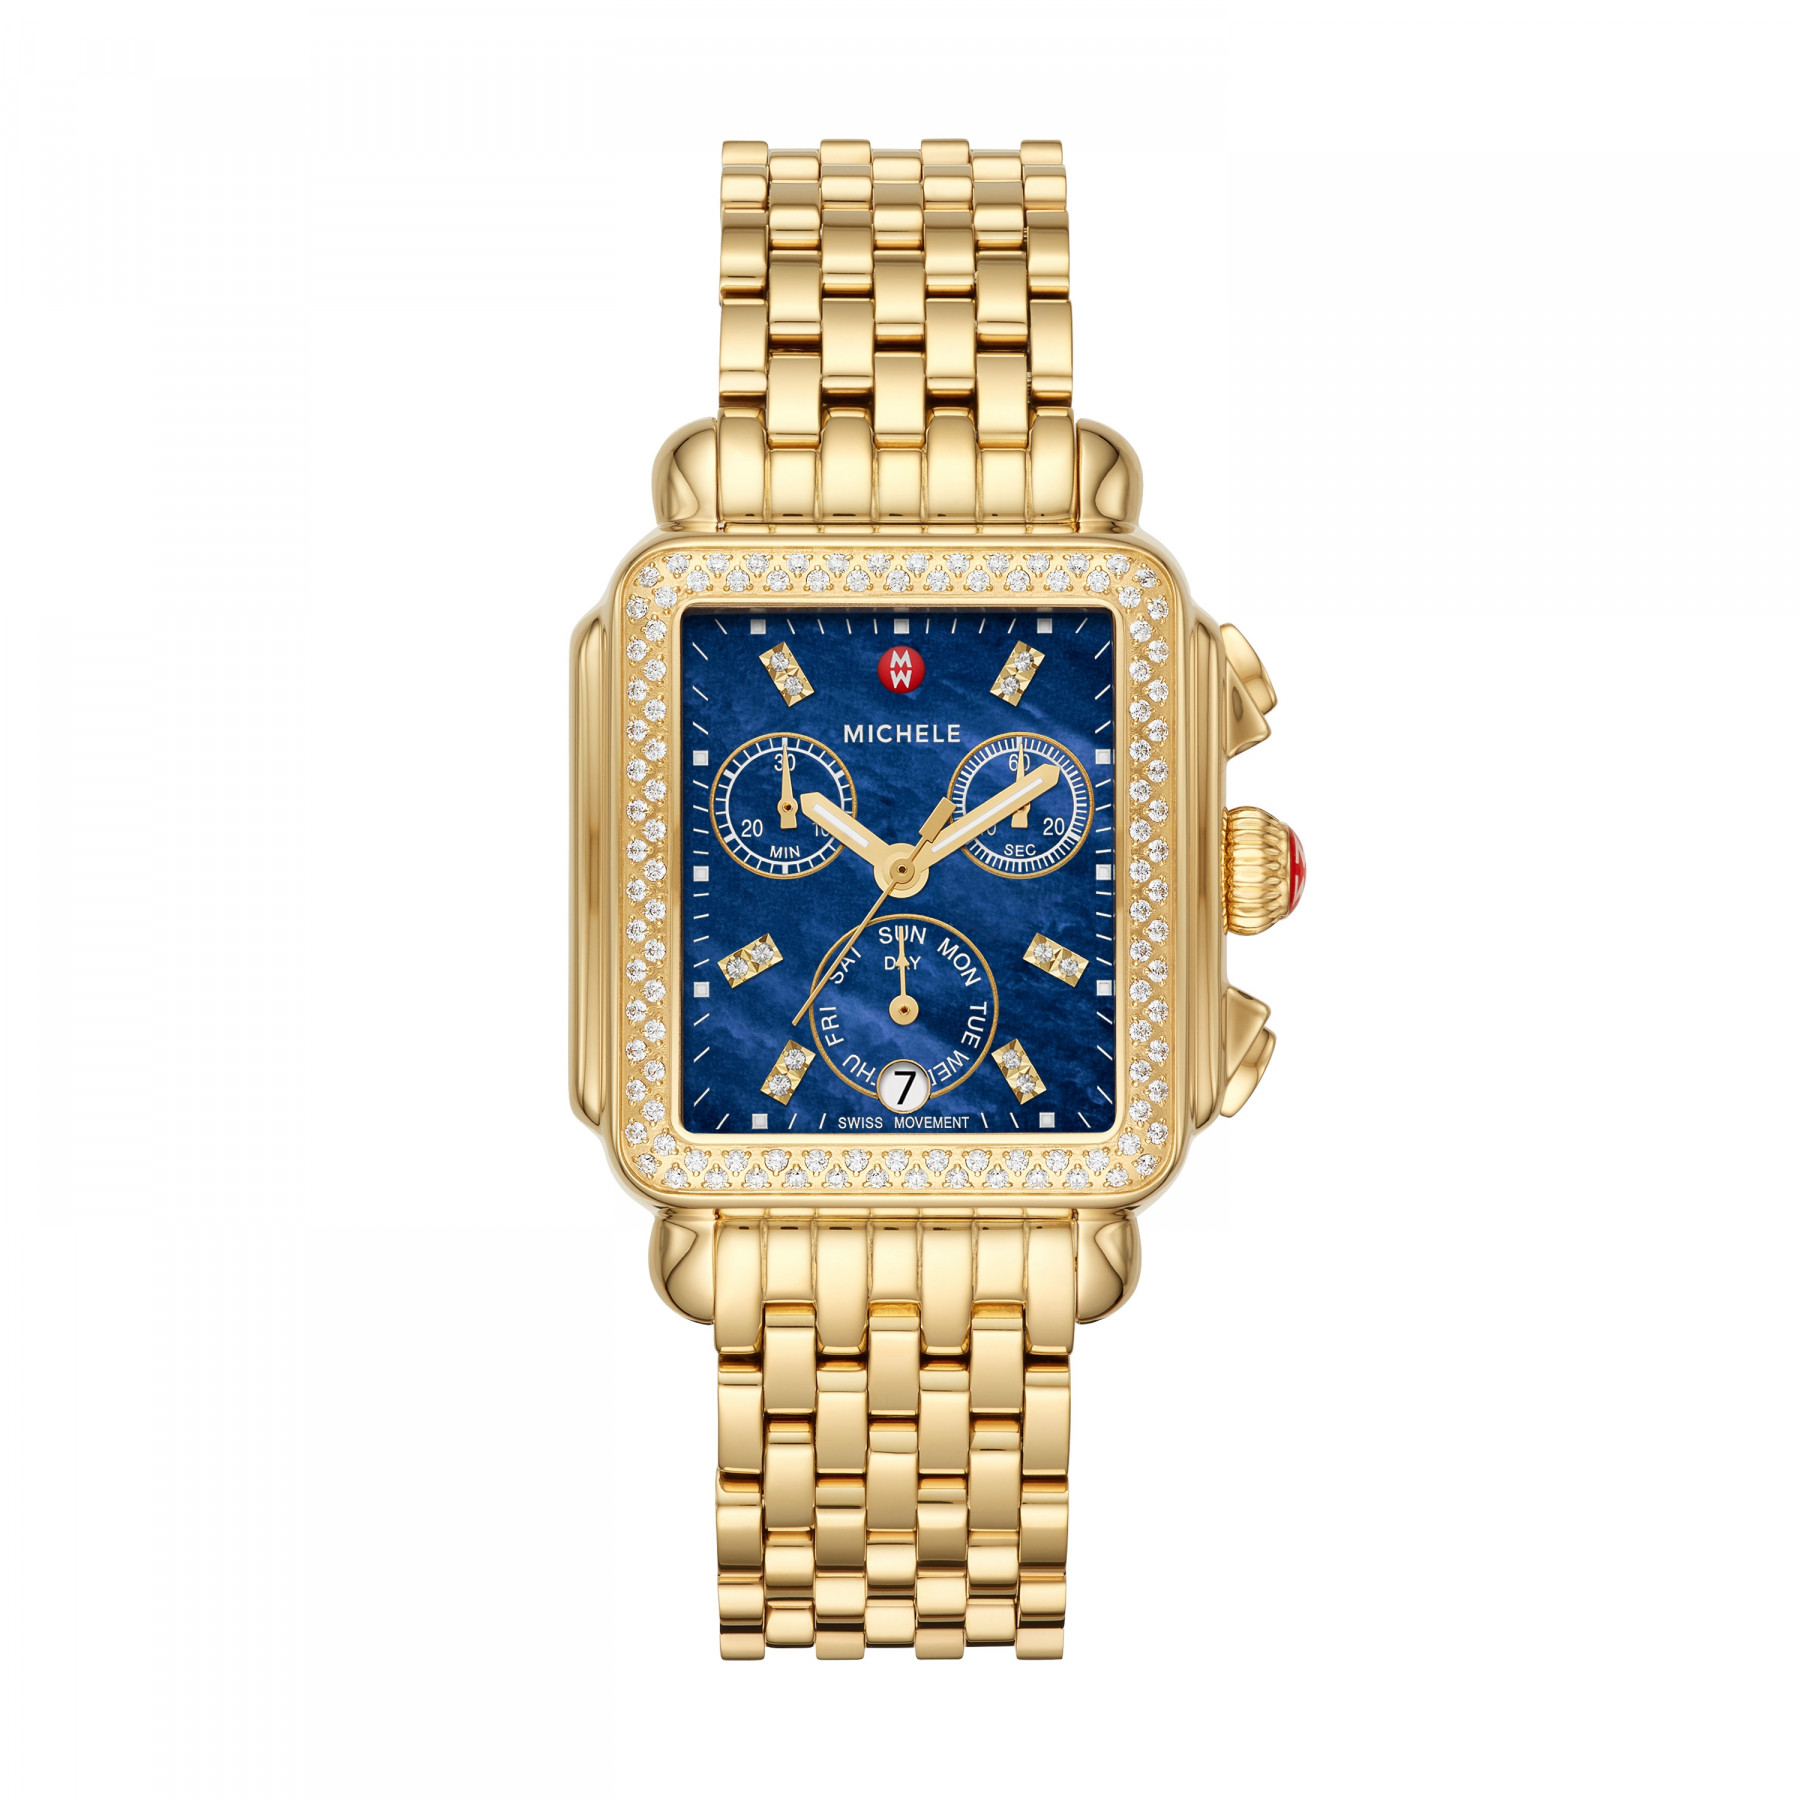 Sale The Deco Haus Tagged Blue: Michele Deco Blue Chronograph Diamond Dial Watch In Yellow